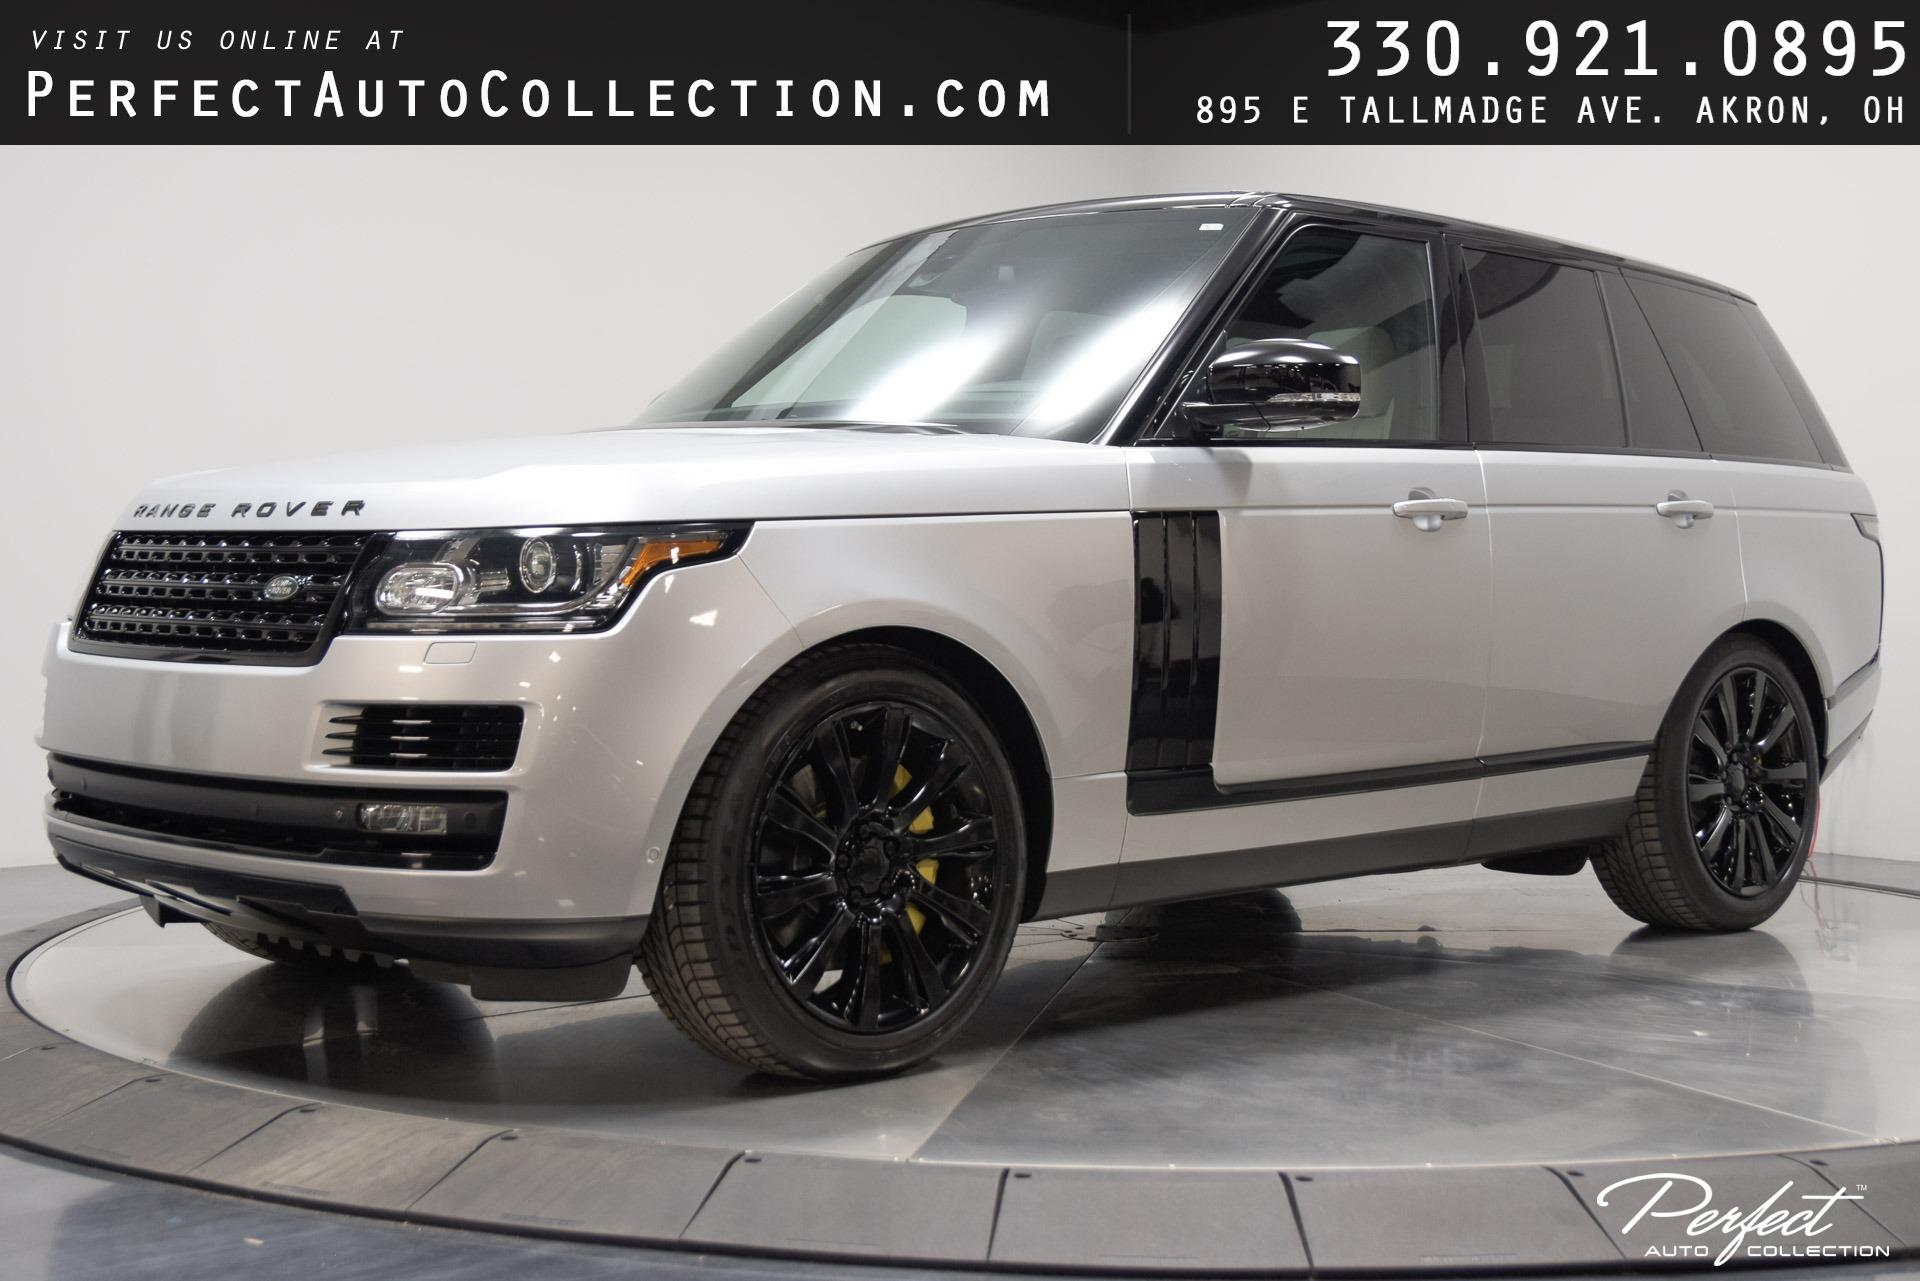 Used 2015 Land Rover Range Rover Supercharged for sale $53,995 at Perfect Auto Collection in Akron OH 44310 1